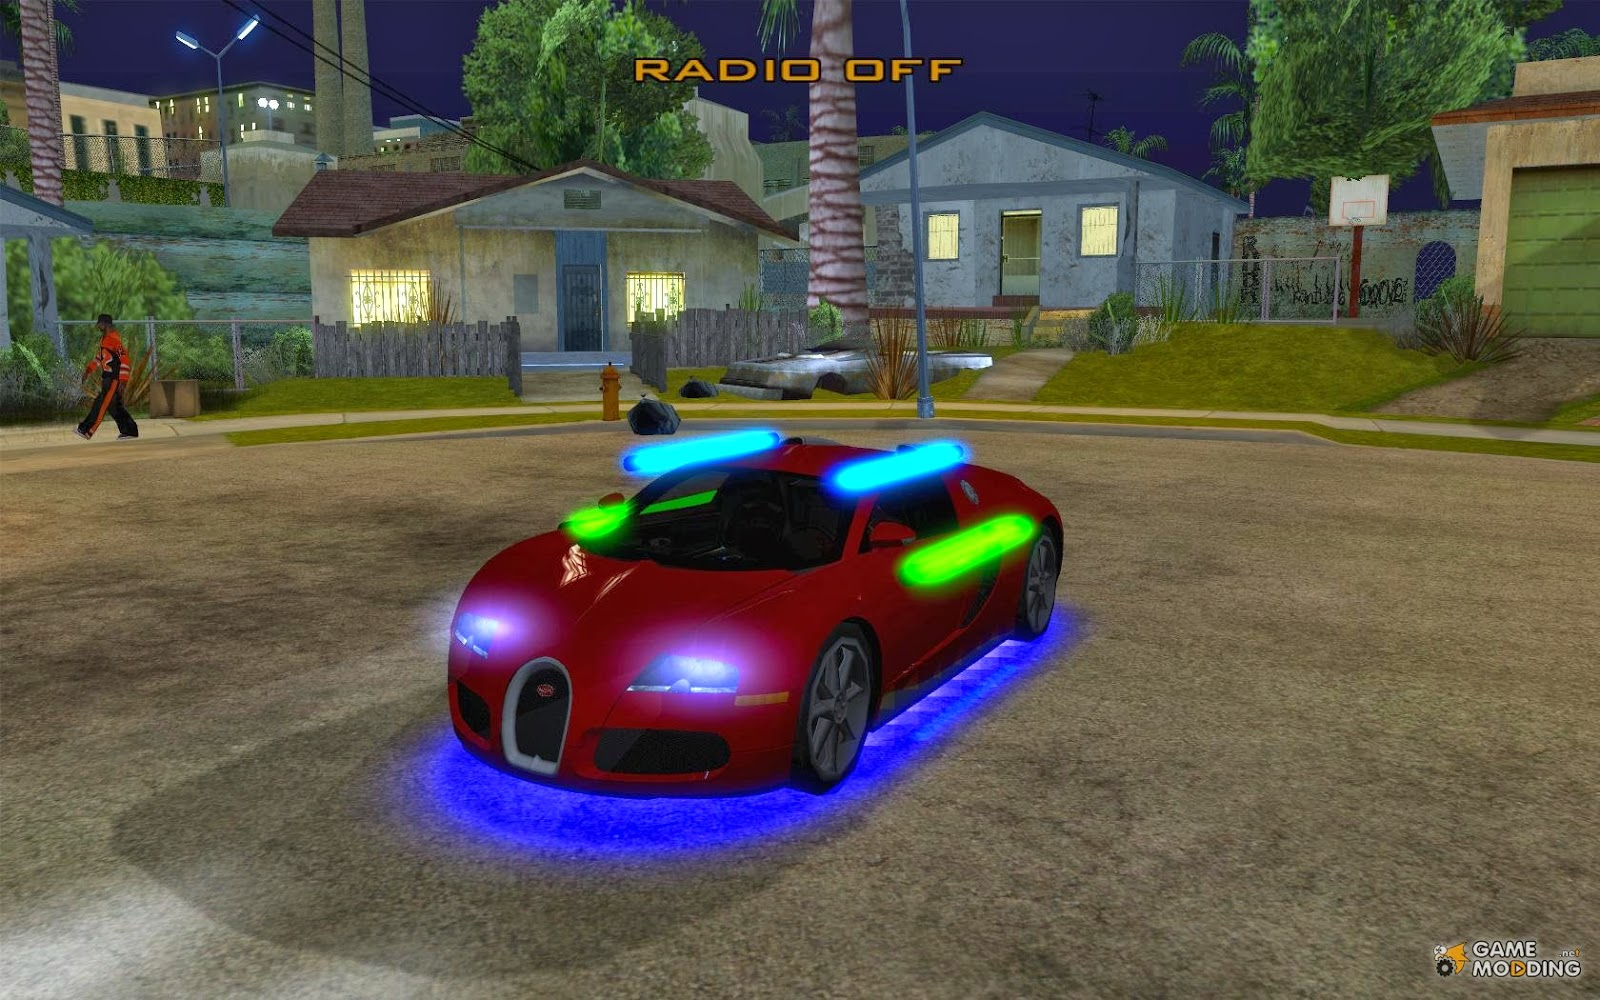 Pimp My Car GTA San Andreas Free Download For Windows Pc Free - Cool cars gta